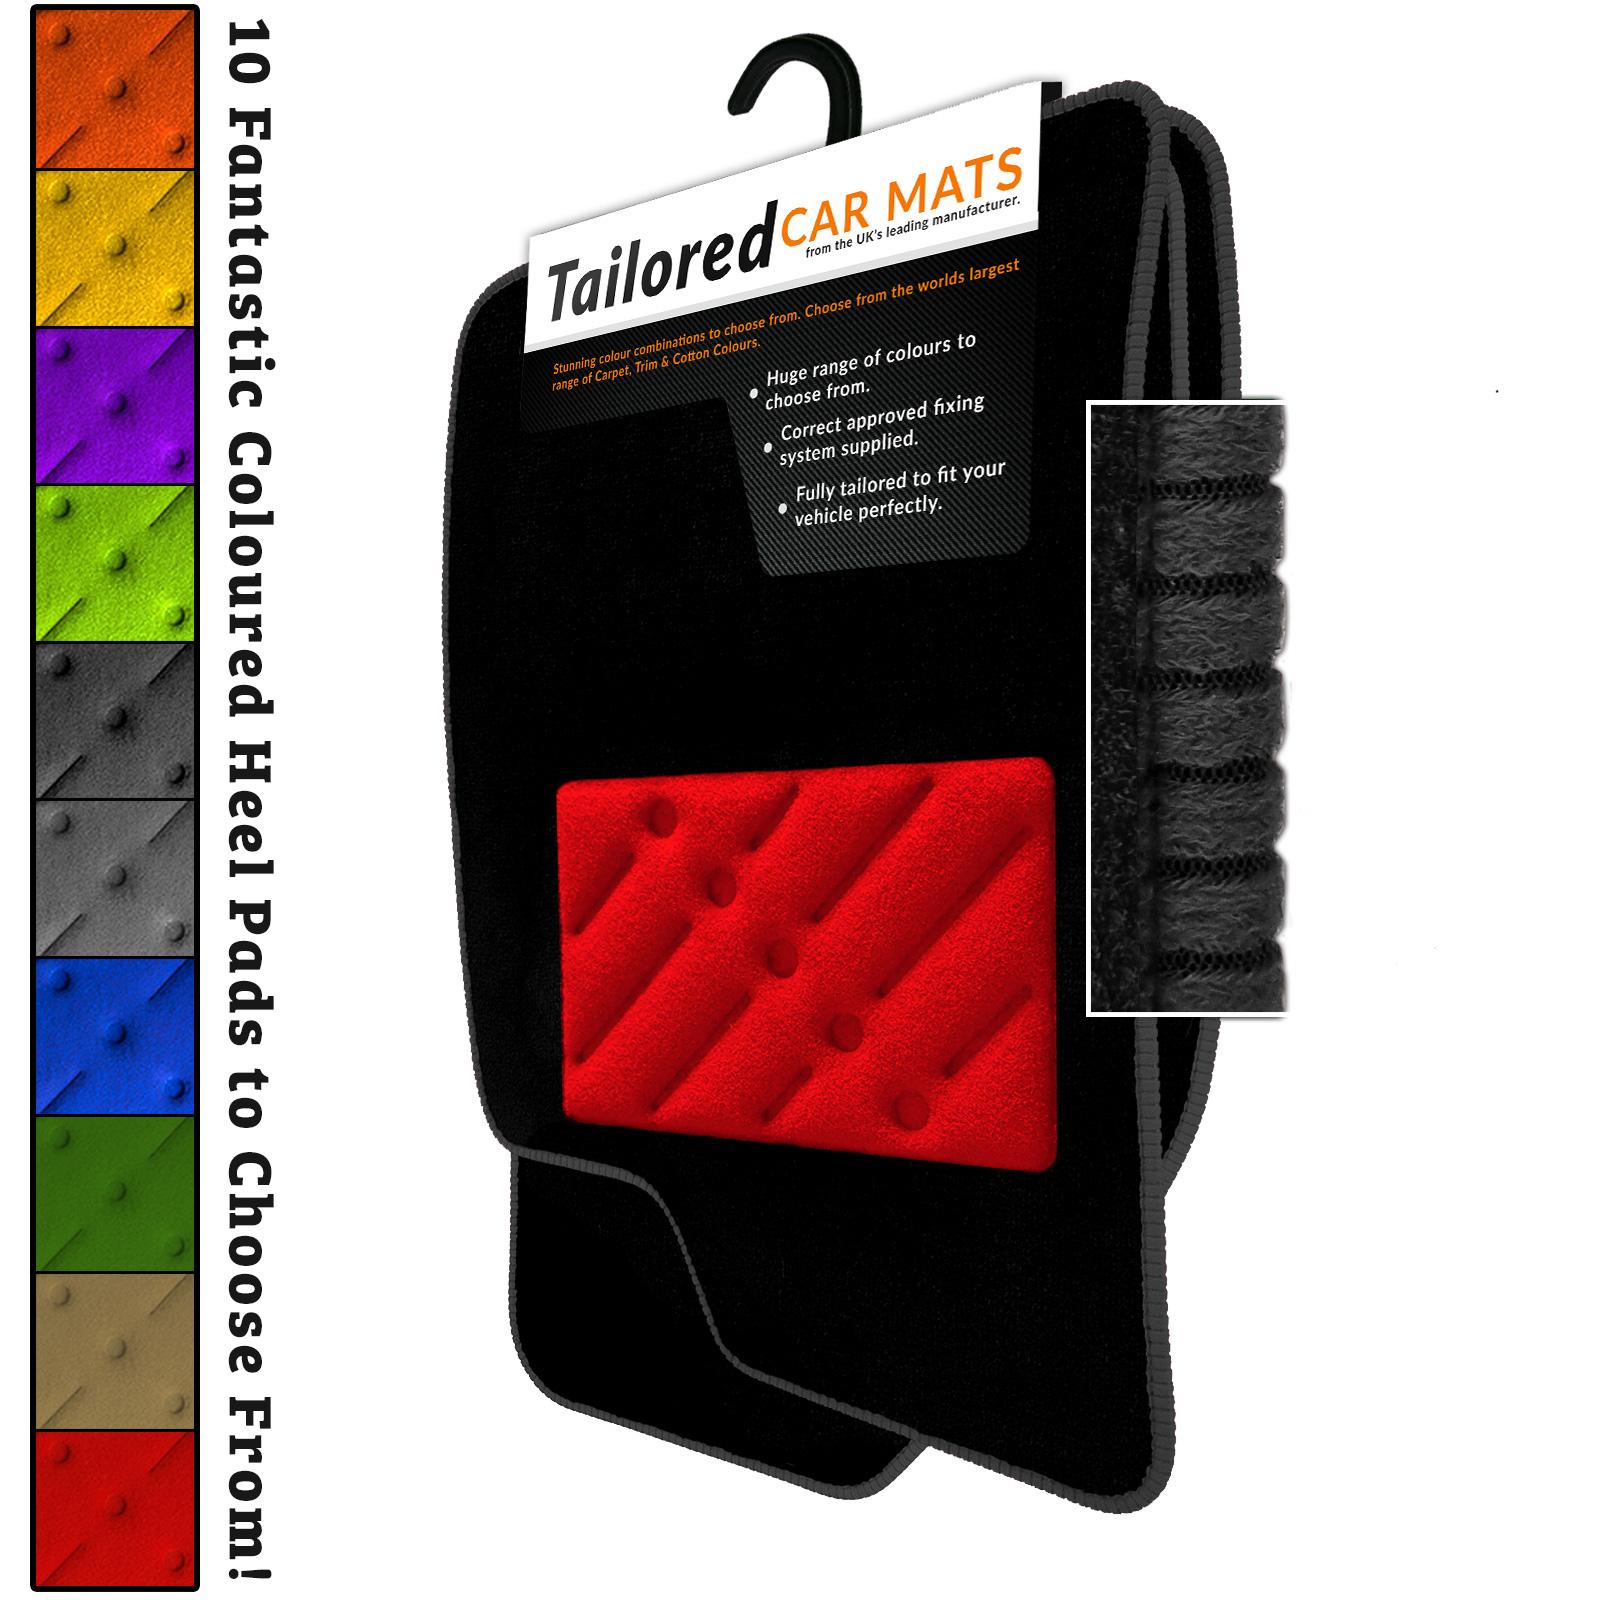 CLIPS Fiat Panda 2012-on Fully Tailored Deluxe Car Mats in Black